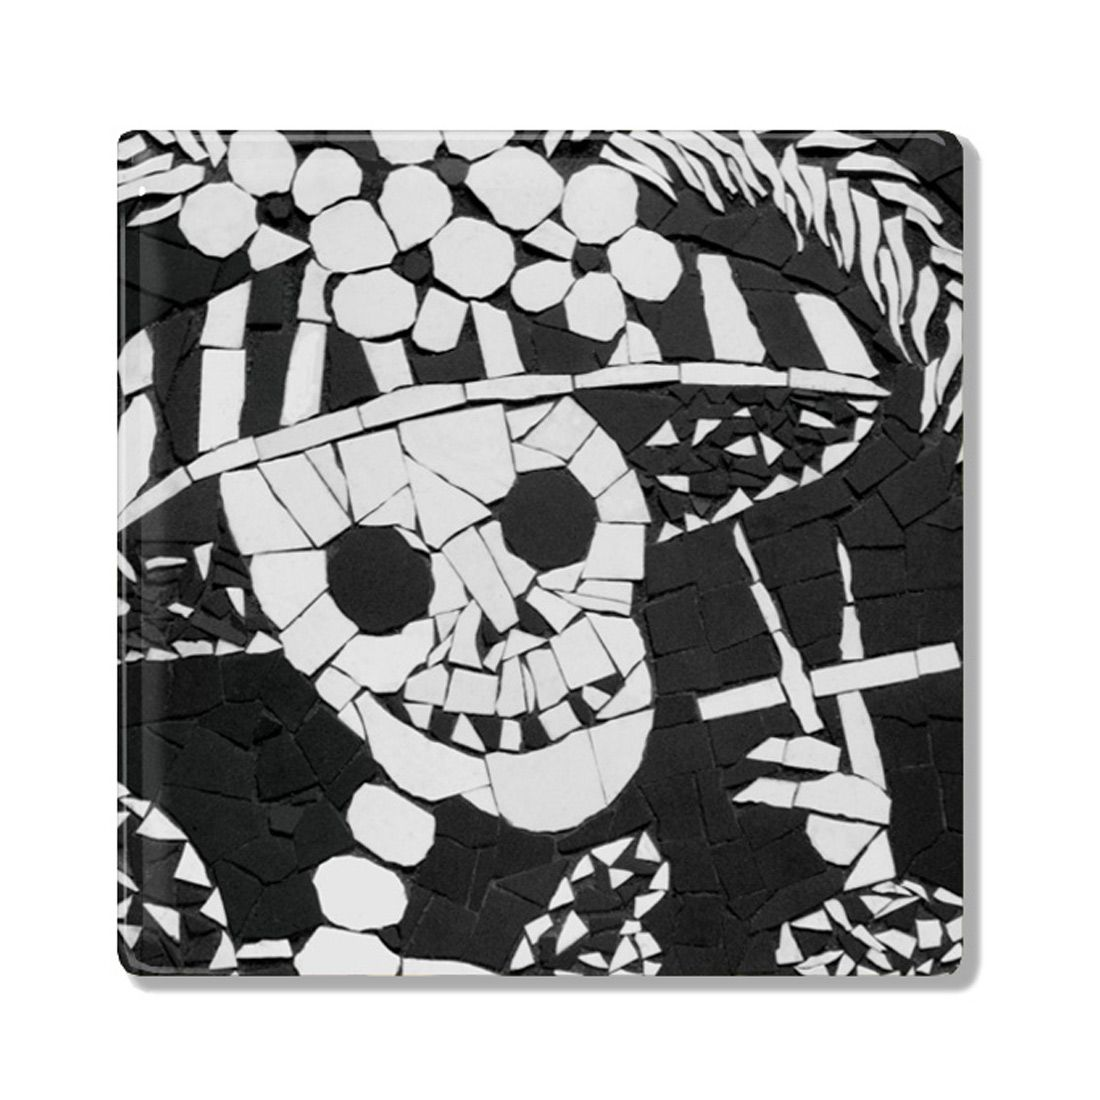 Auntie nana smoking day of the dead skeleton mexican ceramic coaster auntie nana ceramic coaster skeleton smoking sugarskull dayofthedead skulls skeleton dailygadgetfo Choice Image